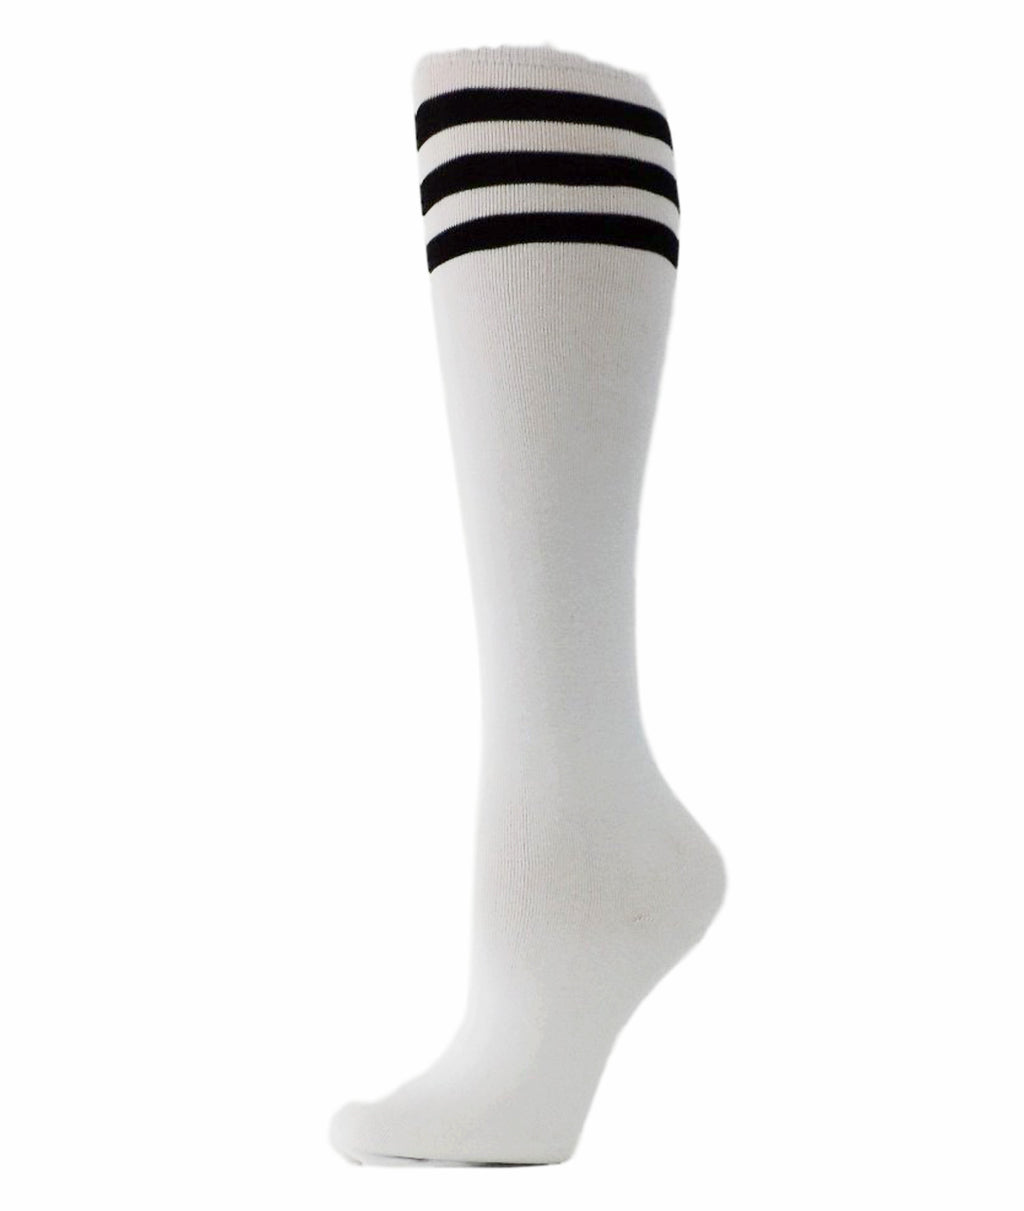 Black Striped Knee High Socks - Global Trendz Fashion®